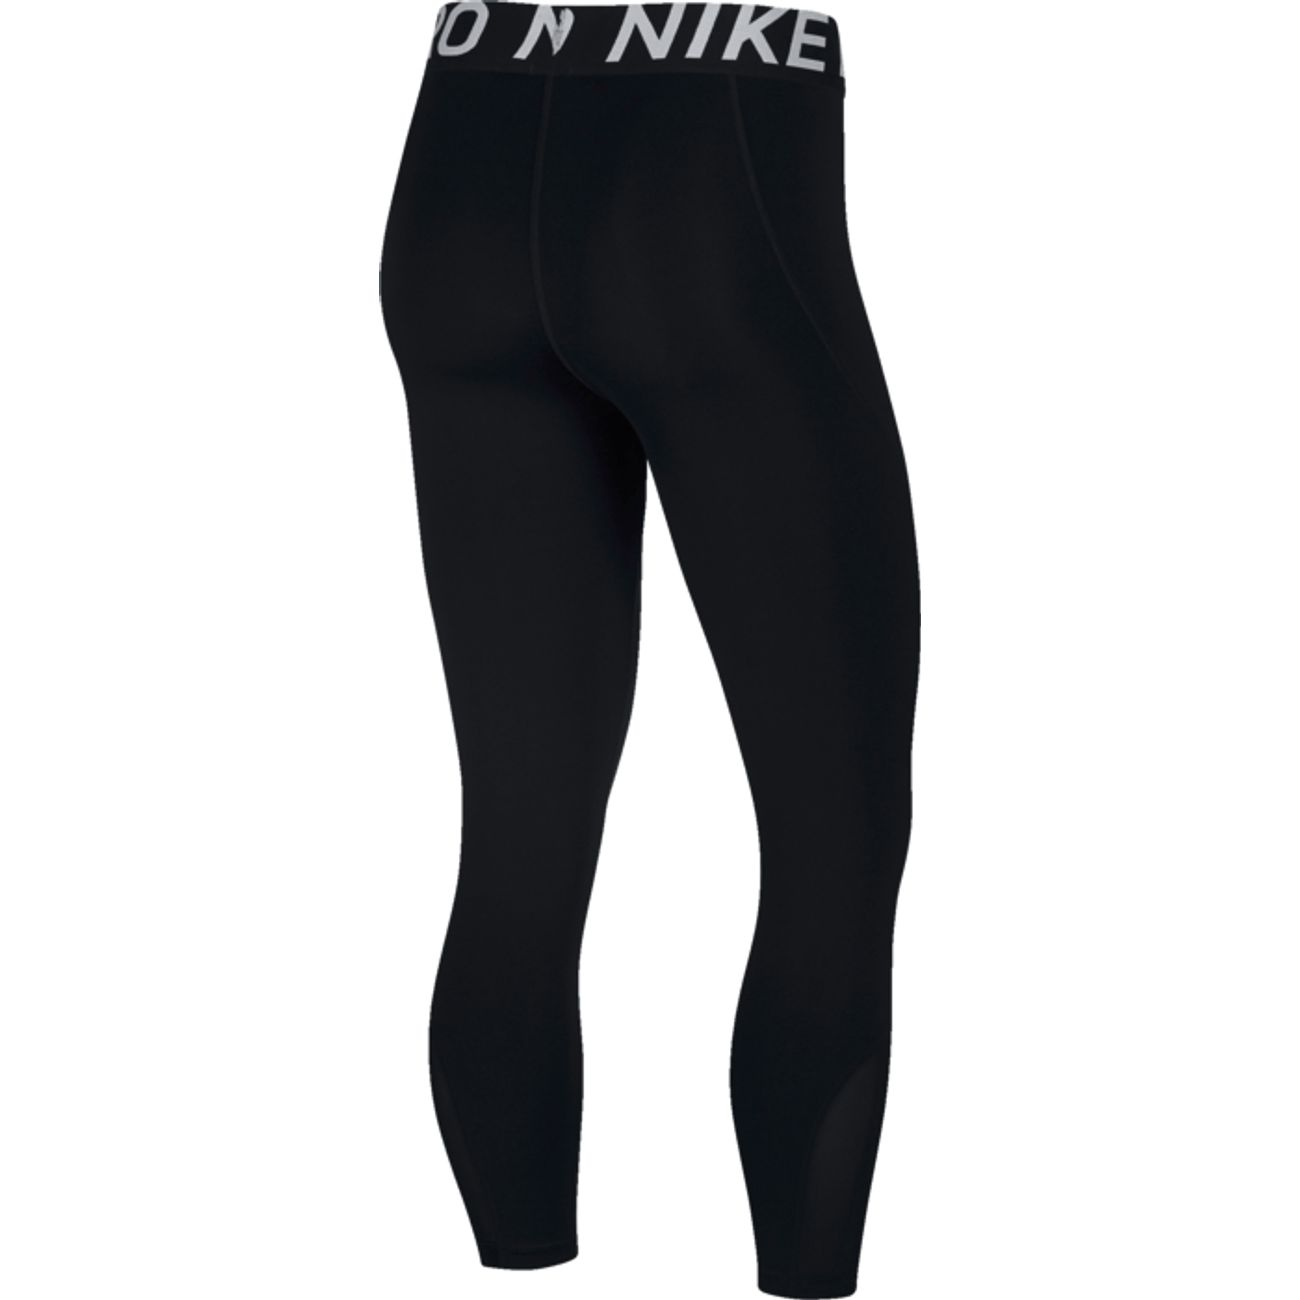 CORSAIRE  femme NIKE Nike Pro 365 Tight crop